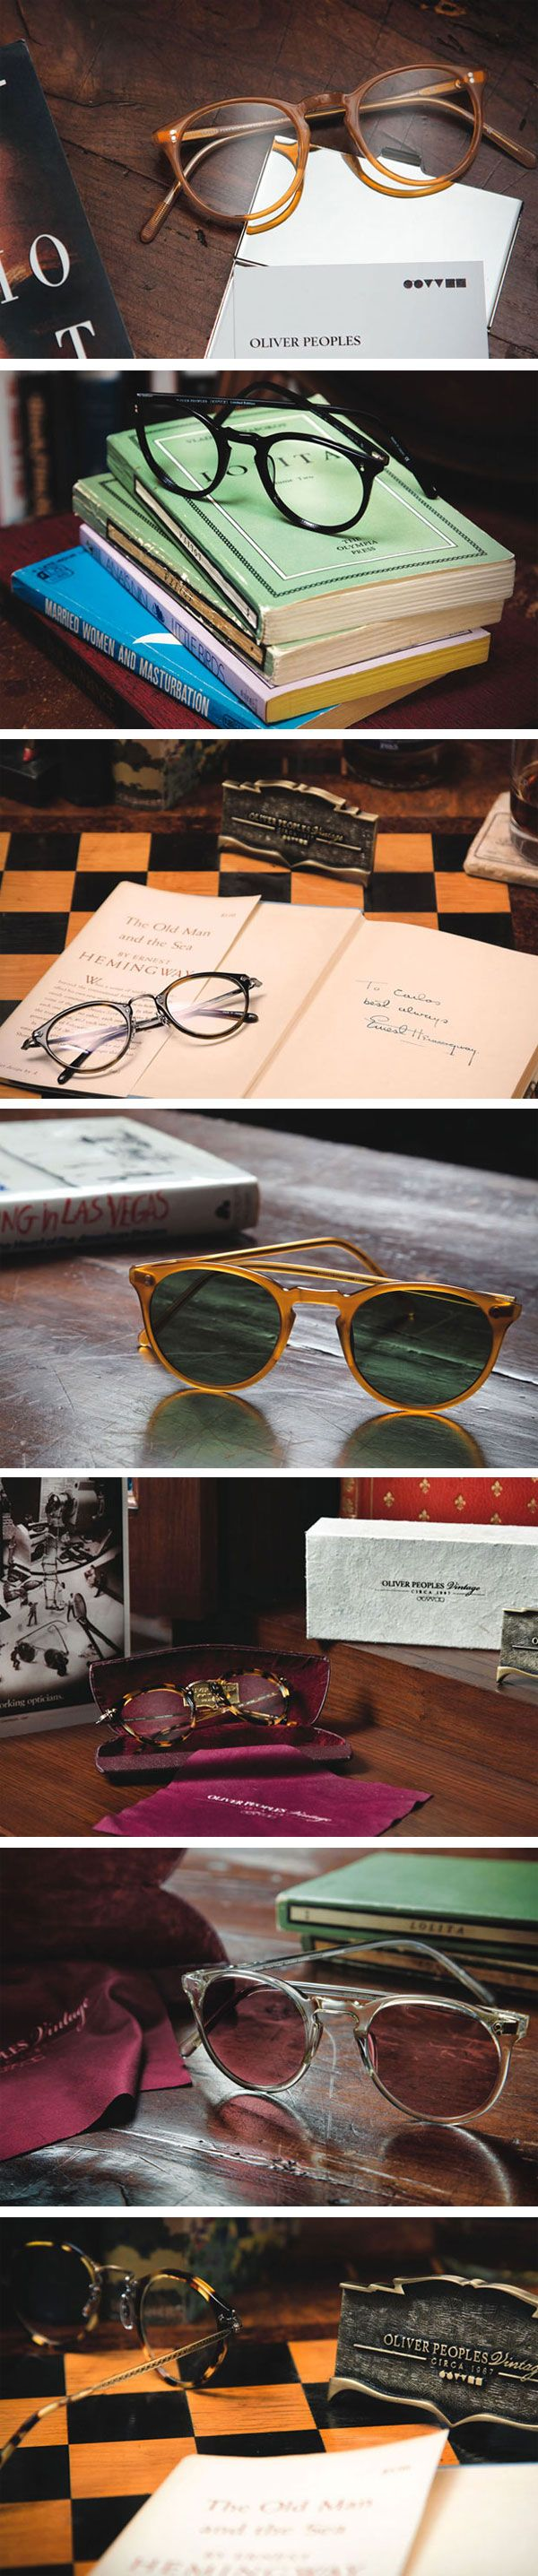 Oliver Peoples 'Vintage Lookbook'